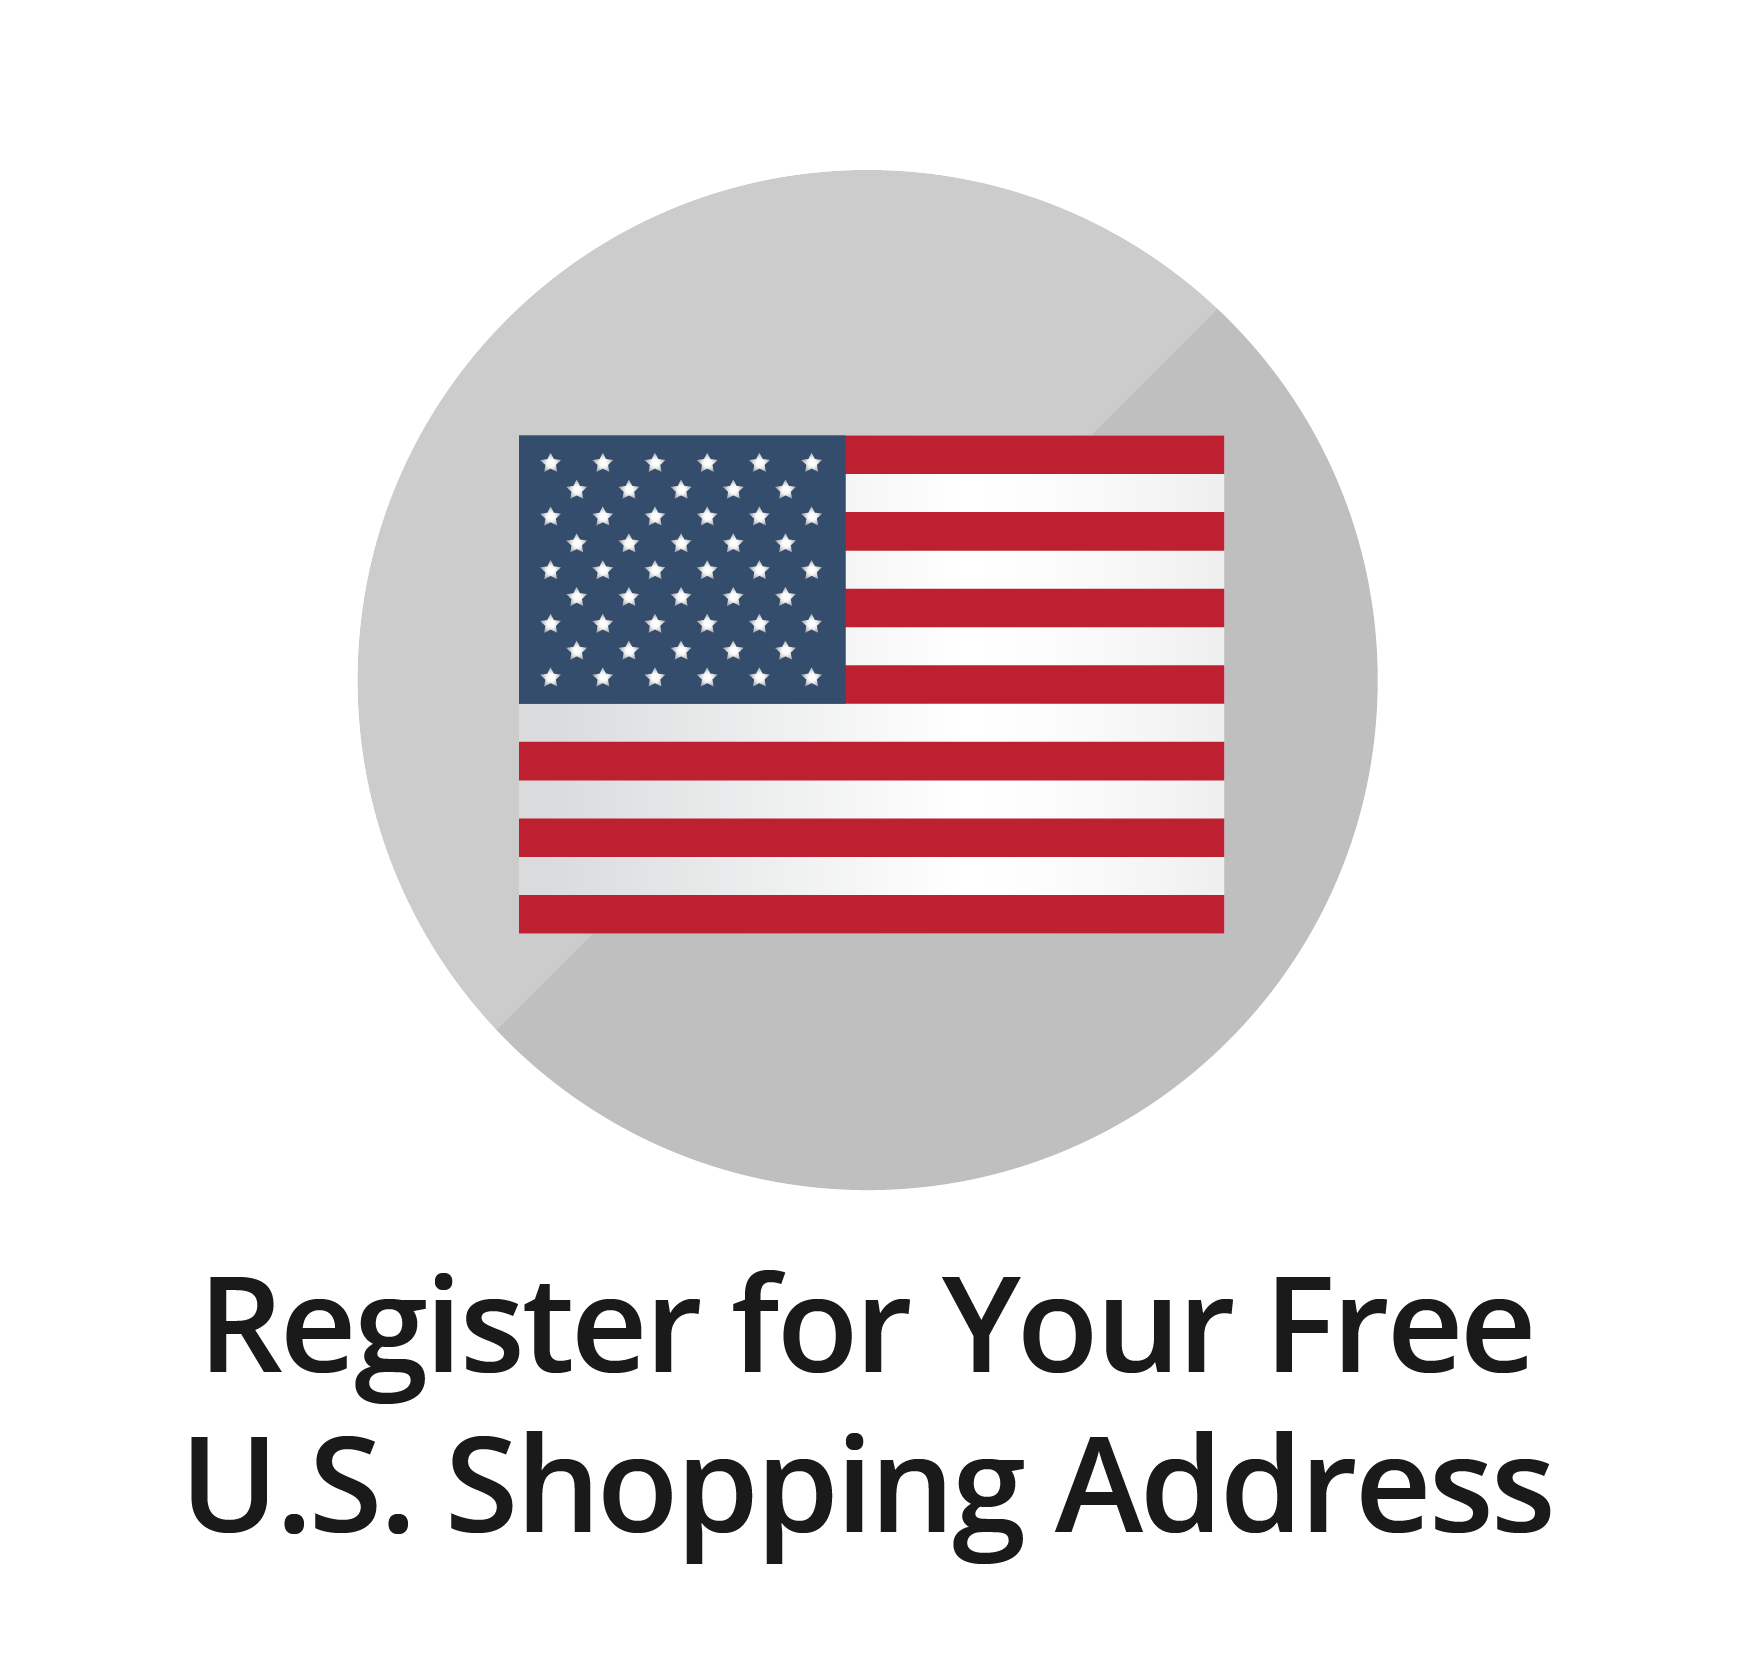 Register for Your Free U.S. Shopping Address